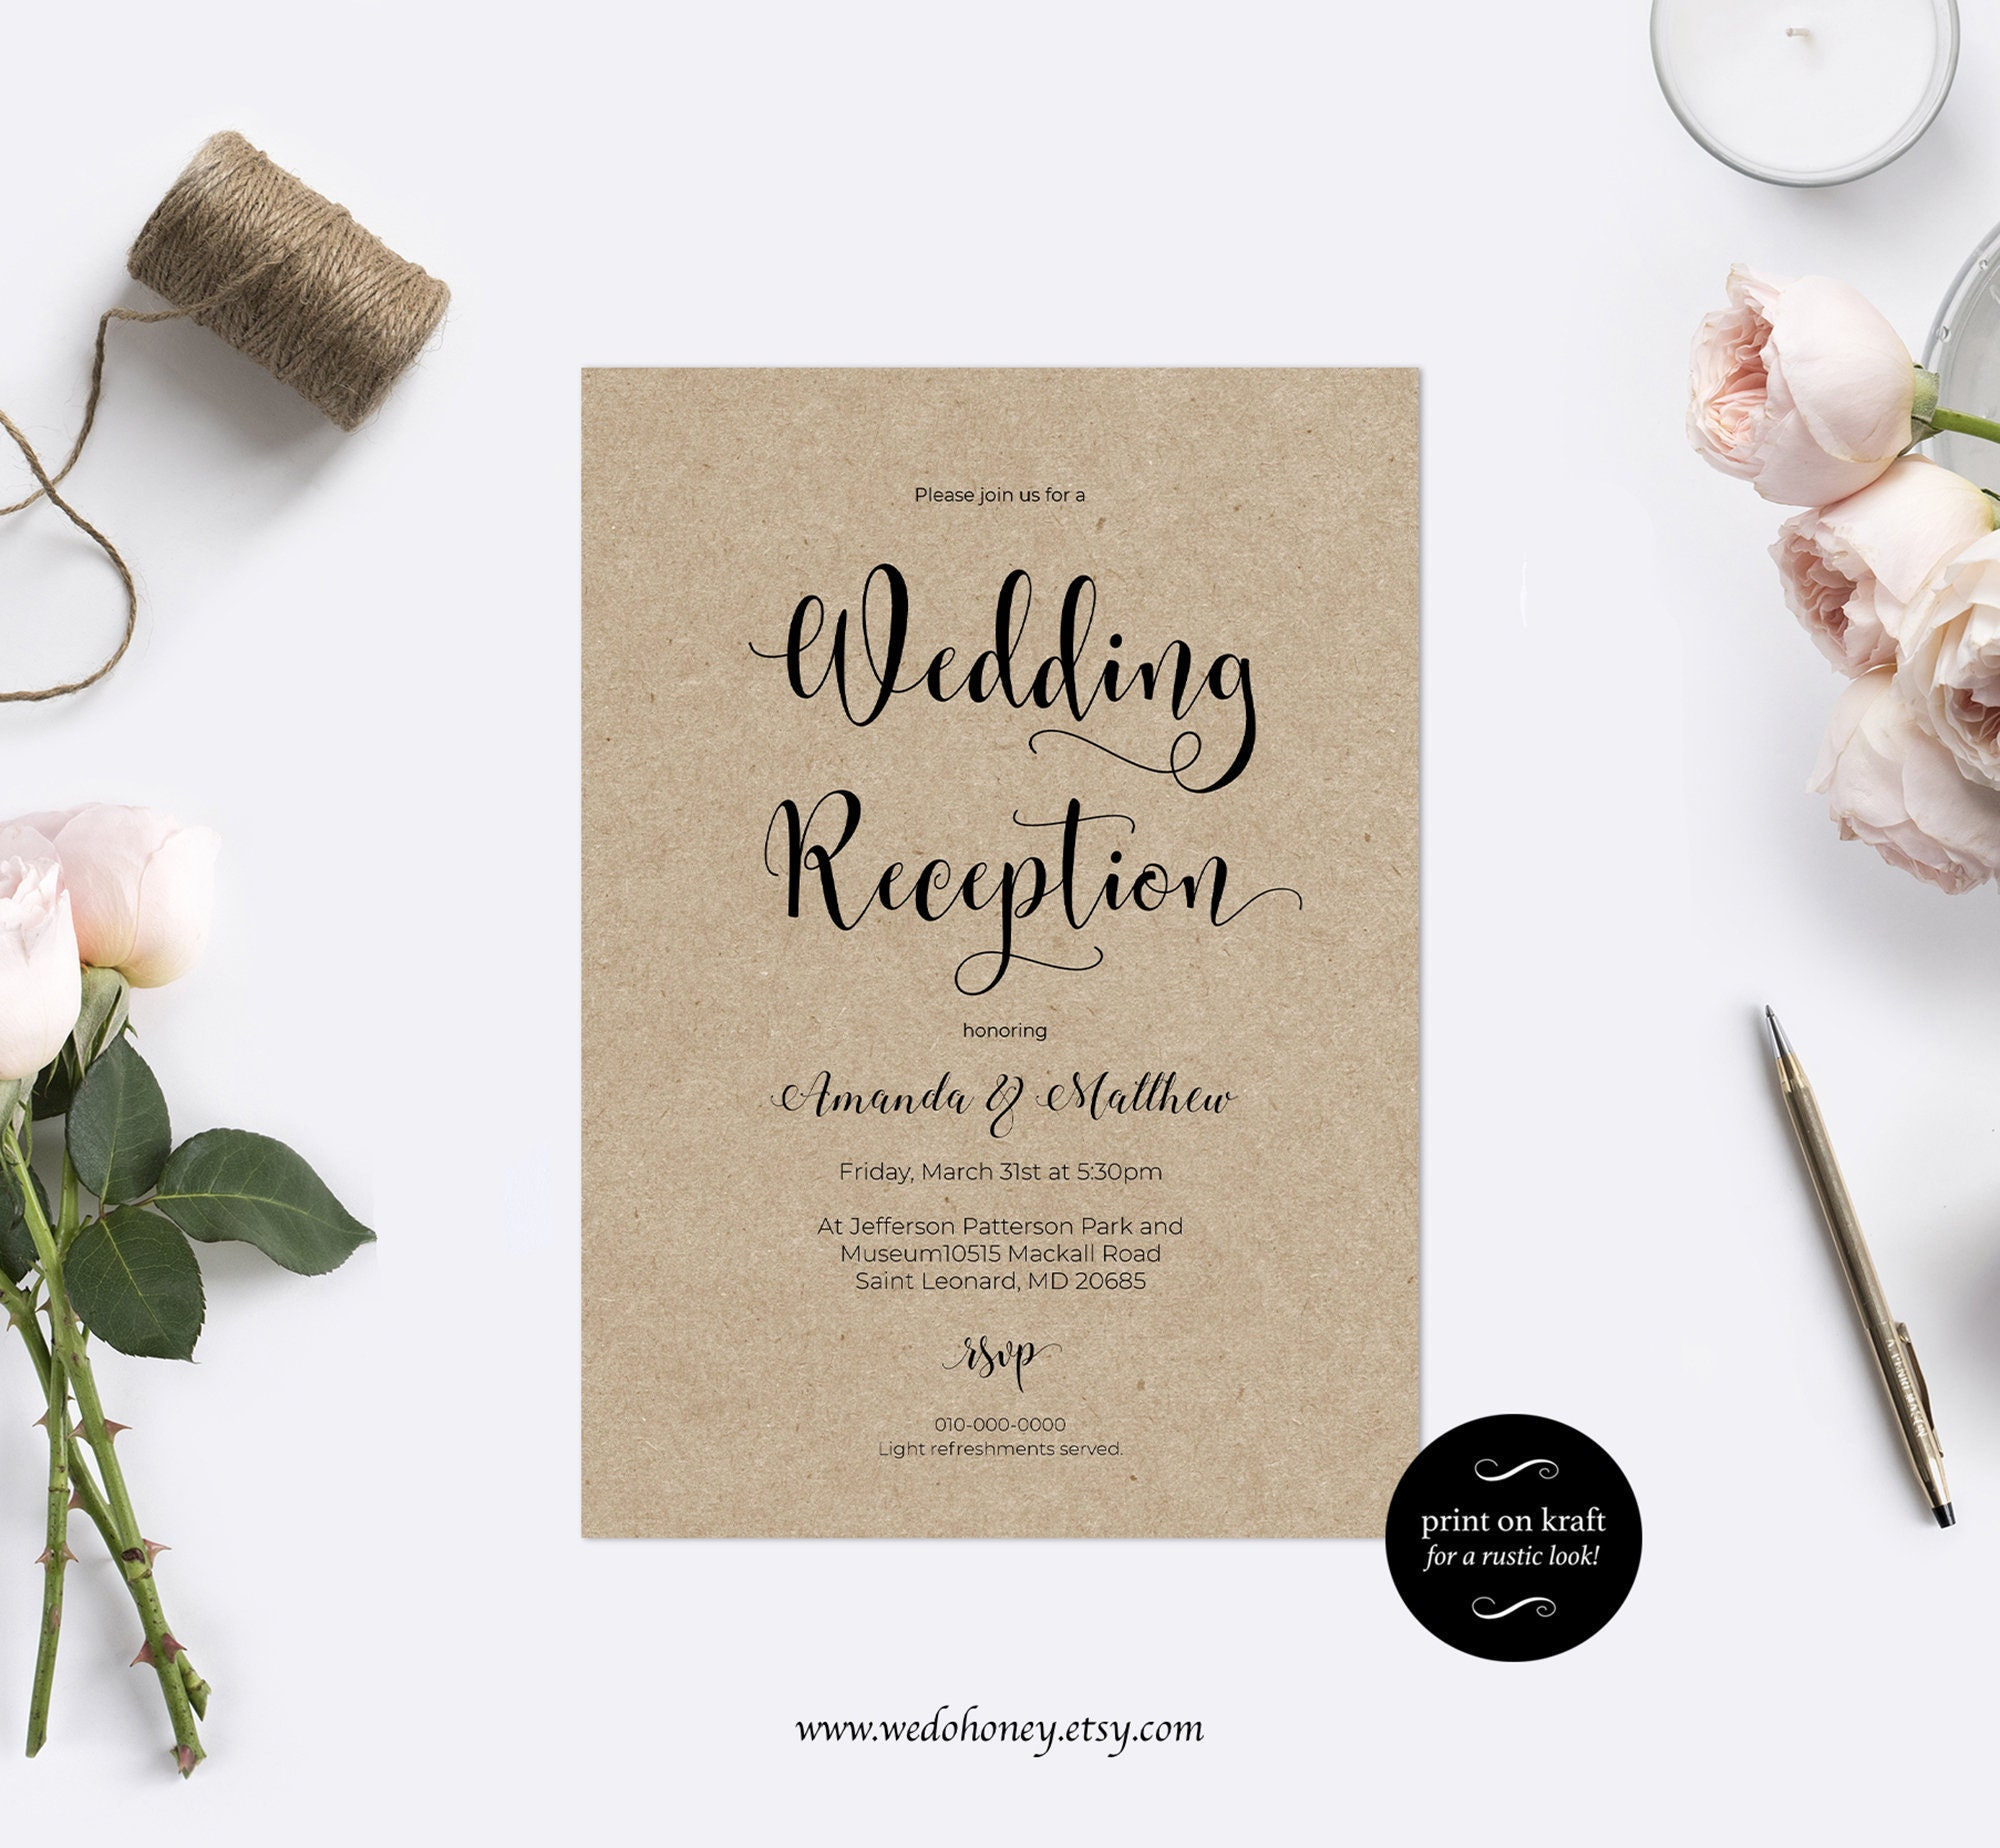 Simple Wedding Reception Invitation, Fully Editable Modern Calligraphy, Edit prior purchase, Download and print.